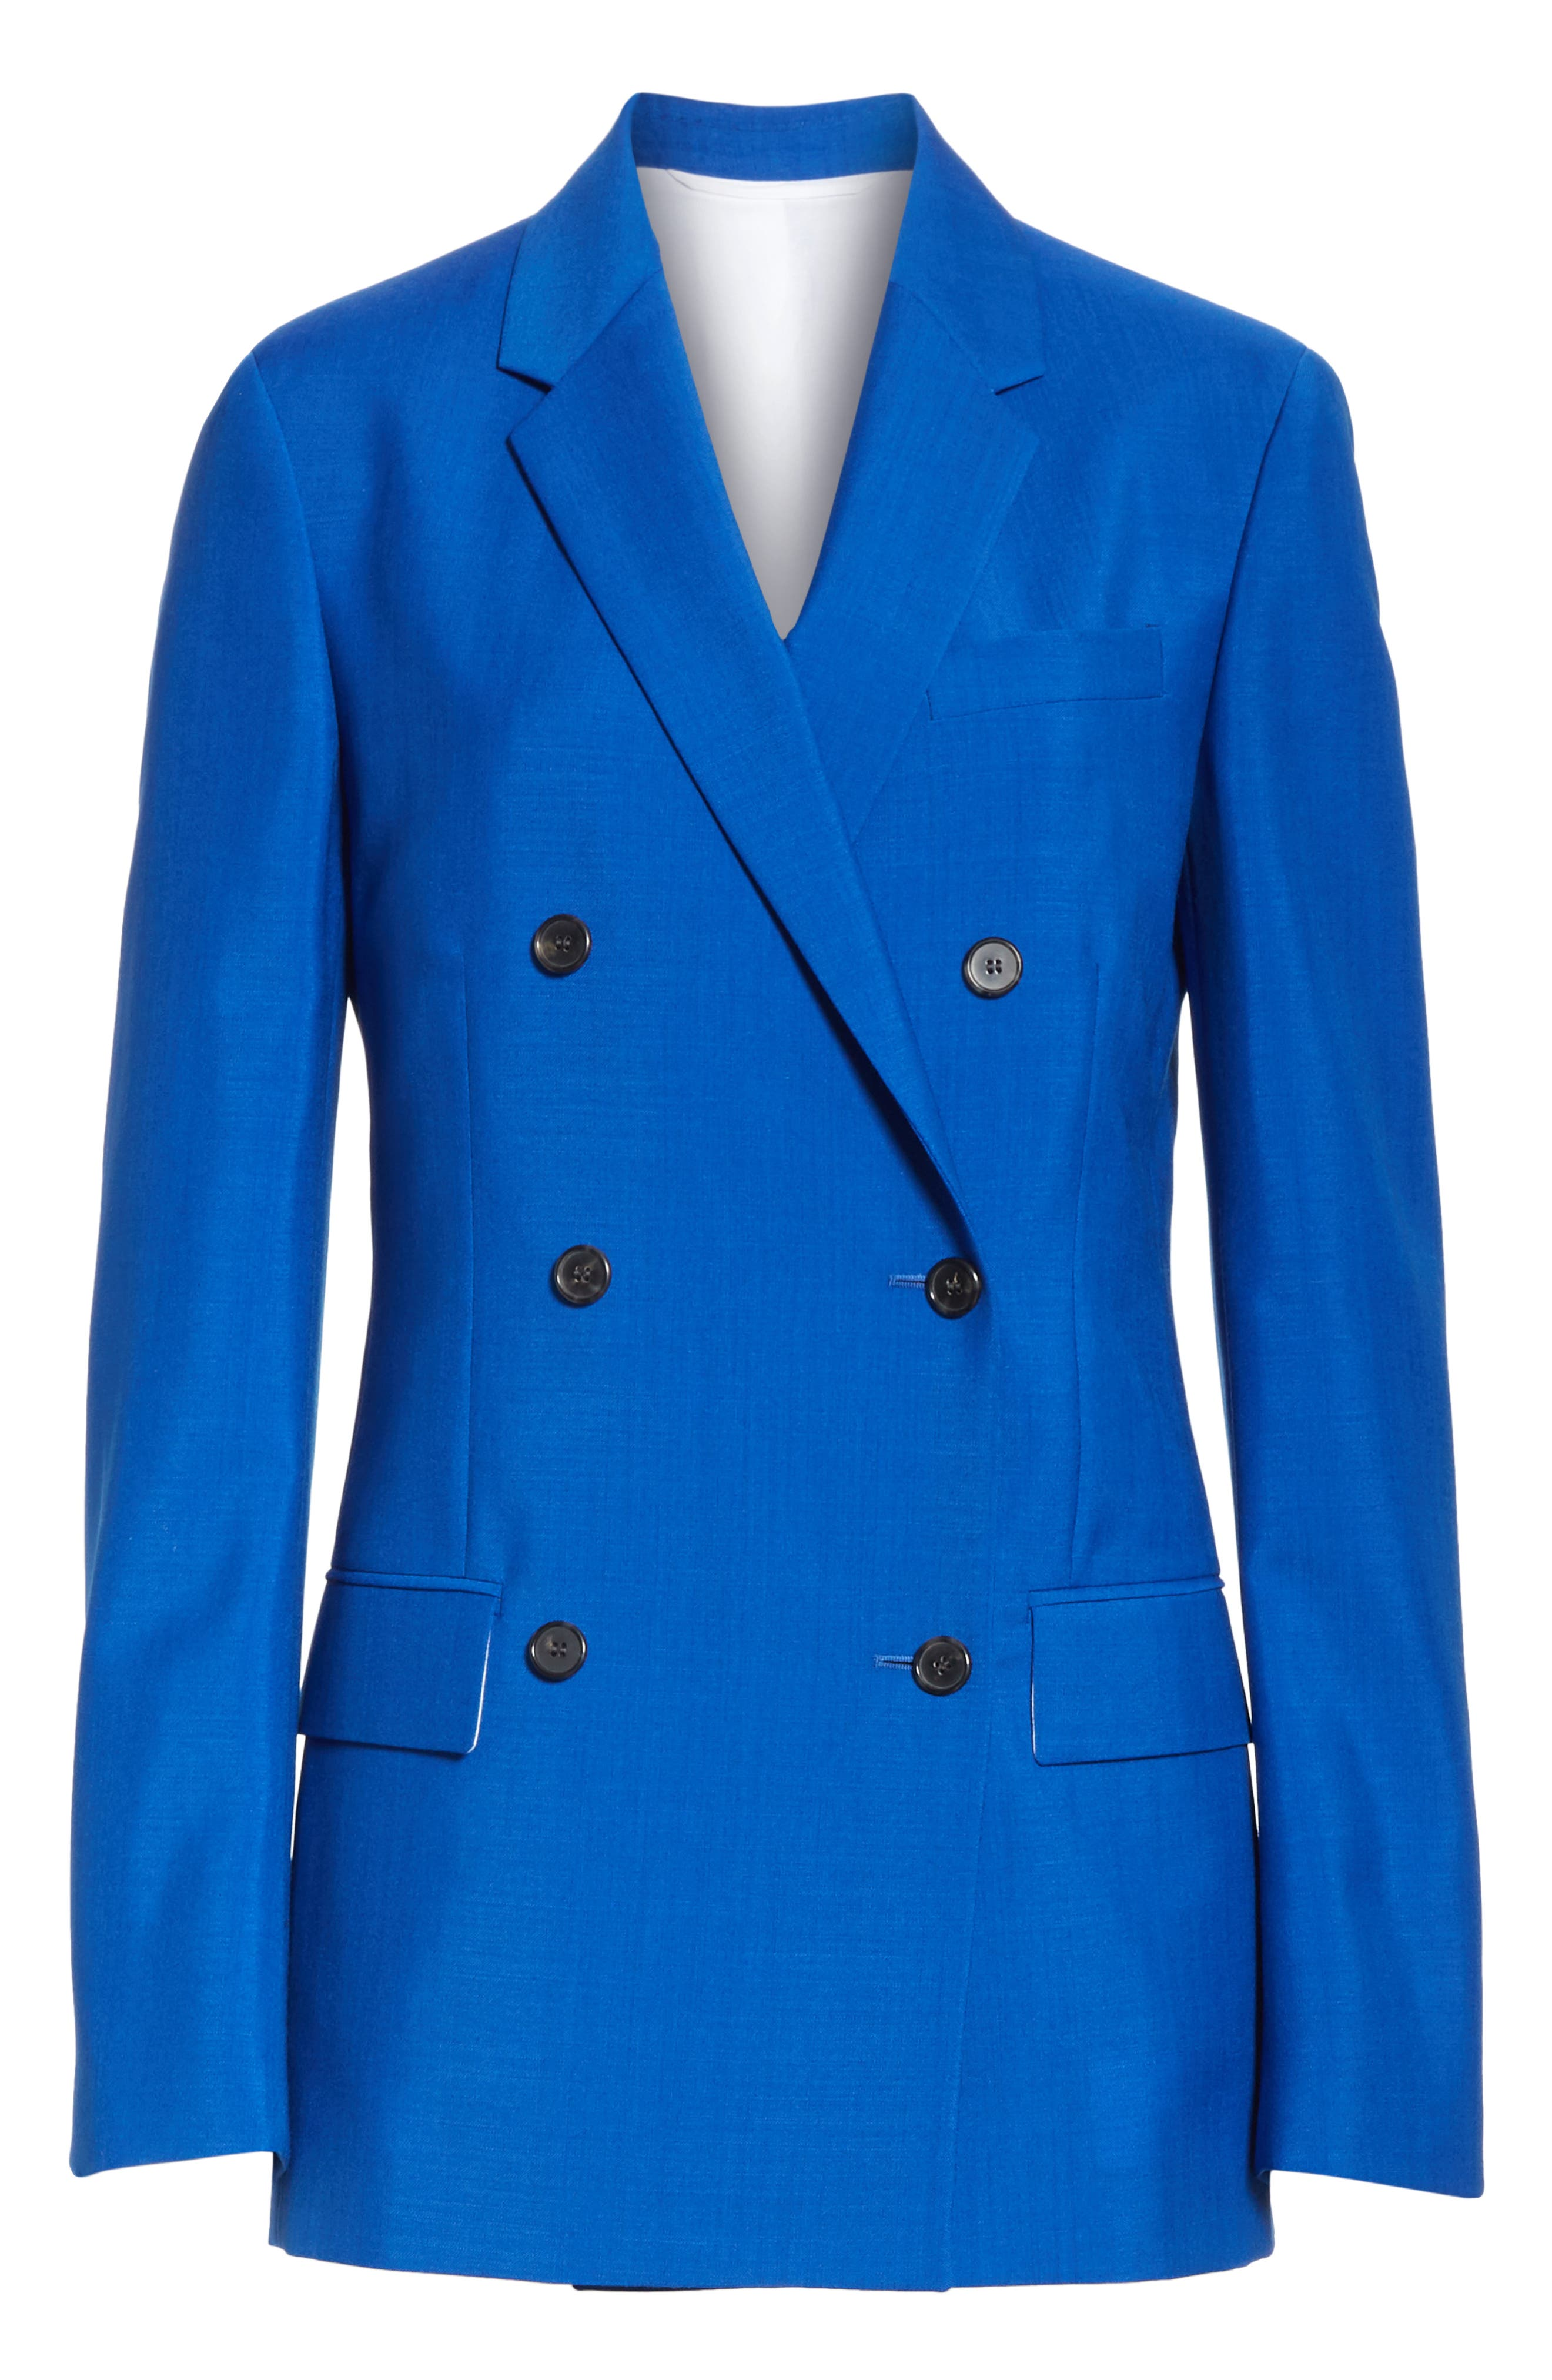 Mohair & Wool Double Breasted Blazer,                             Alternate thumbnail 5, color,                             BRIGHT BLUE